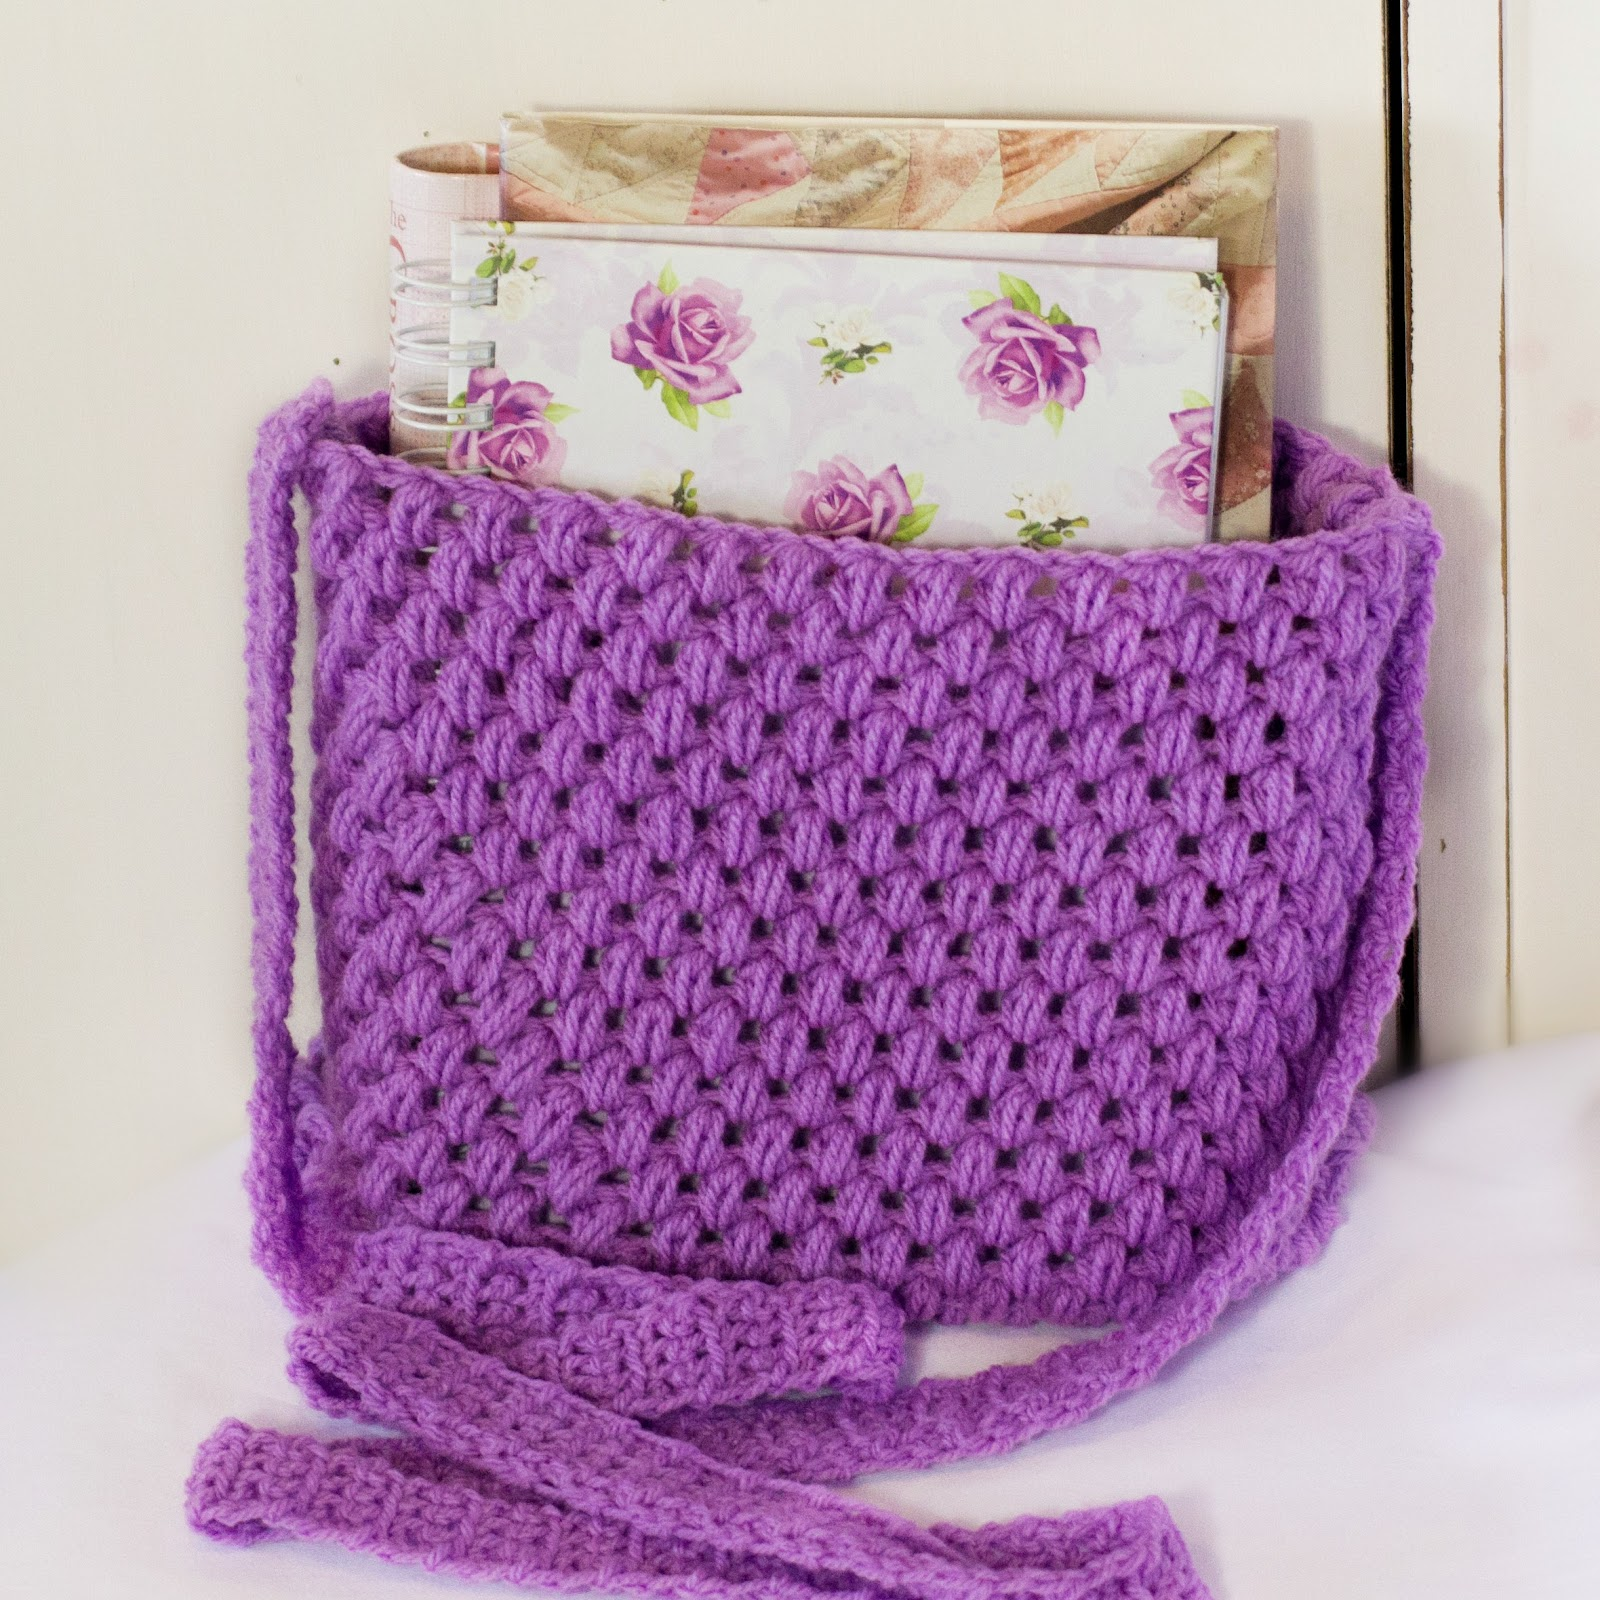 Crochet Purse : ... Craft, Crochet, Create: Out and About ~ Easy Tote Bag Crochet Pattern